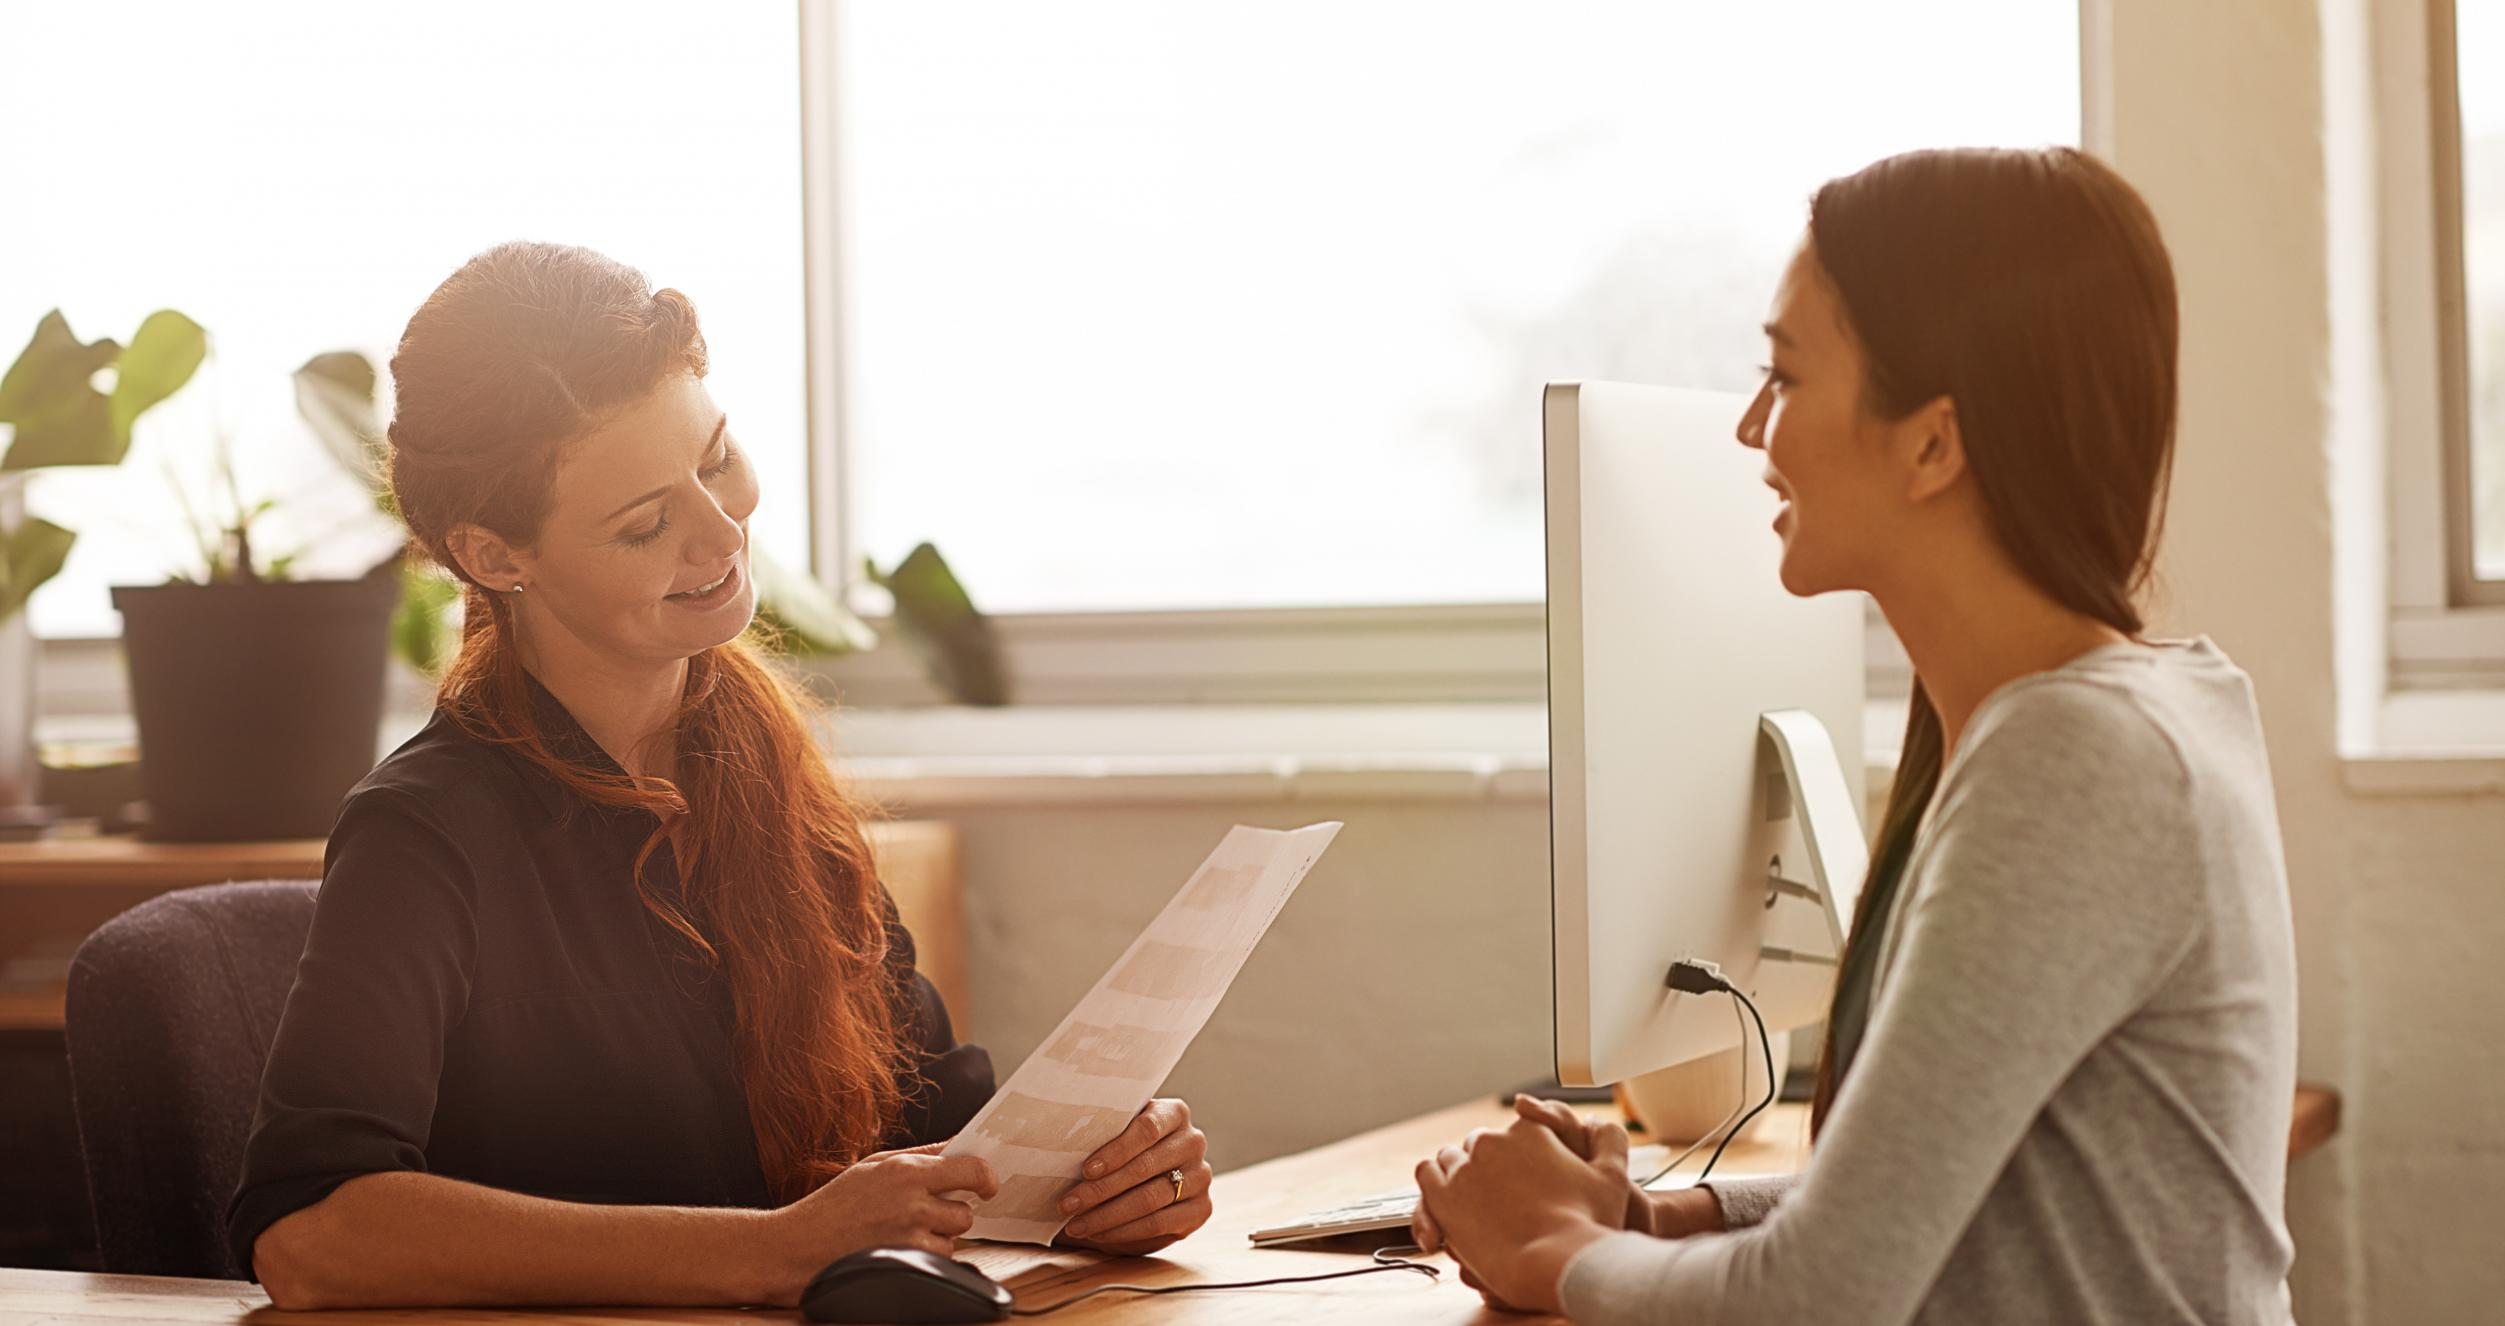 A woman conducts an interview for a female candidate